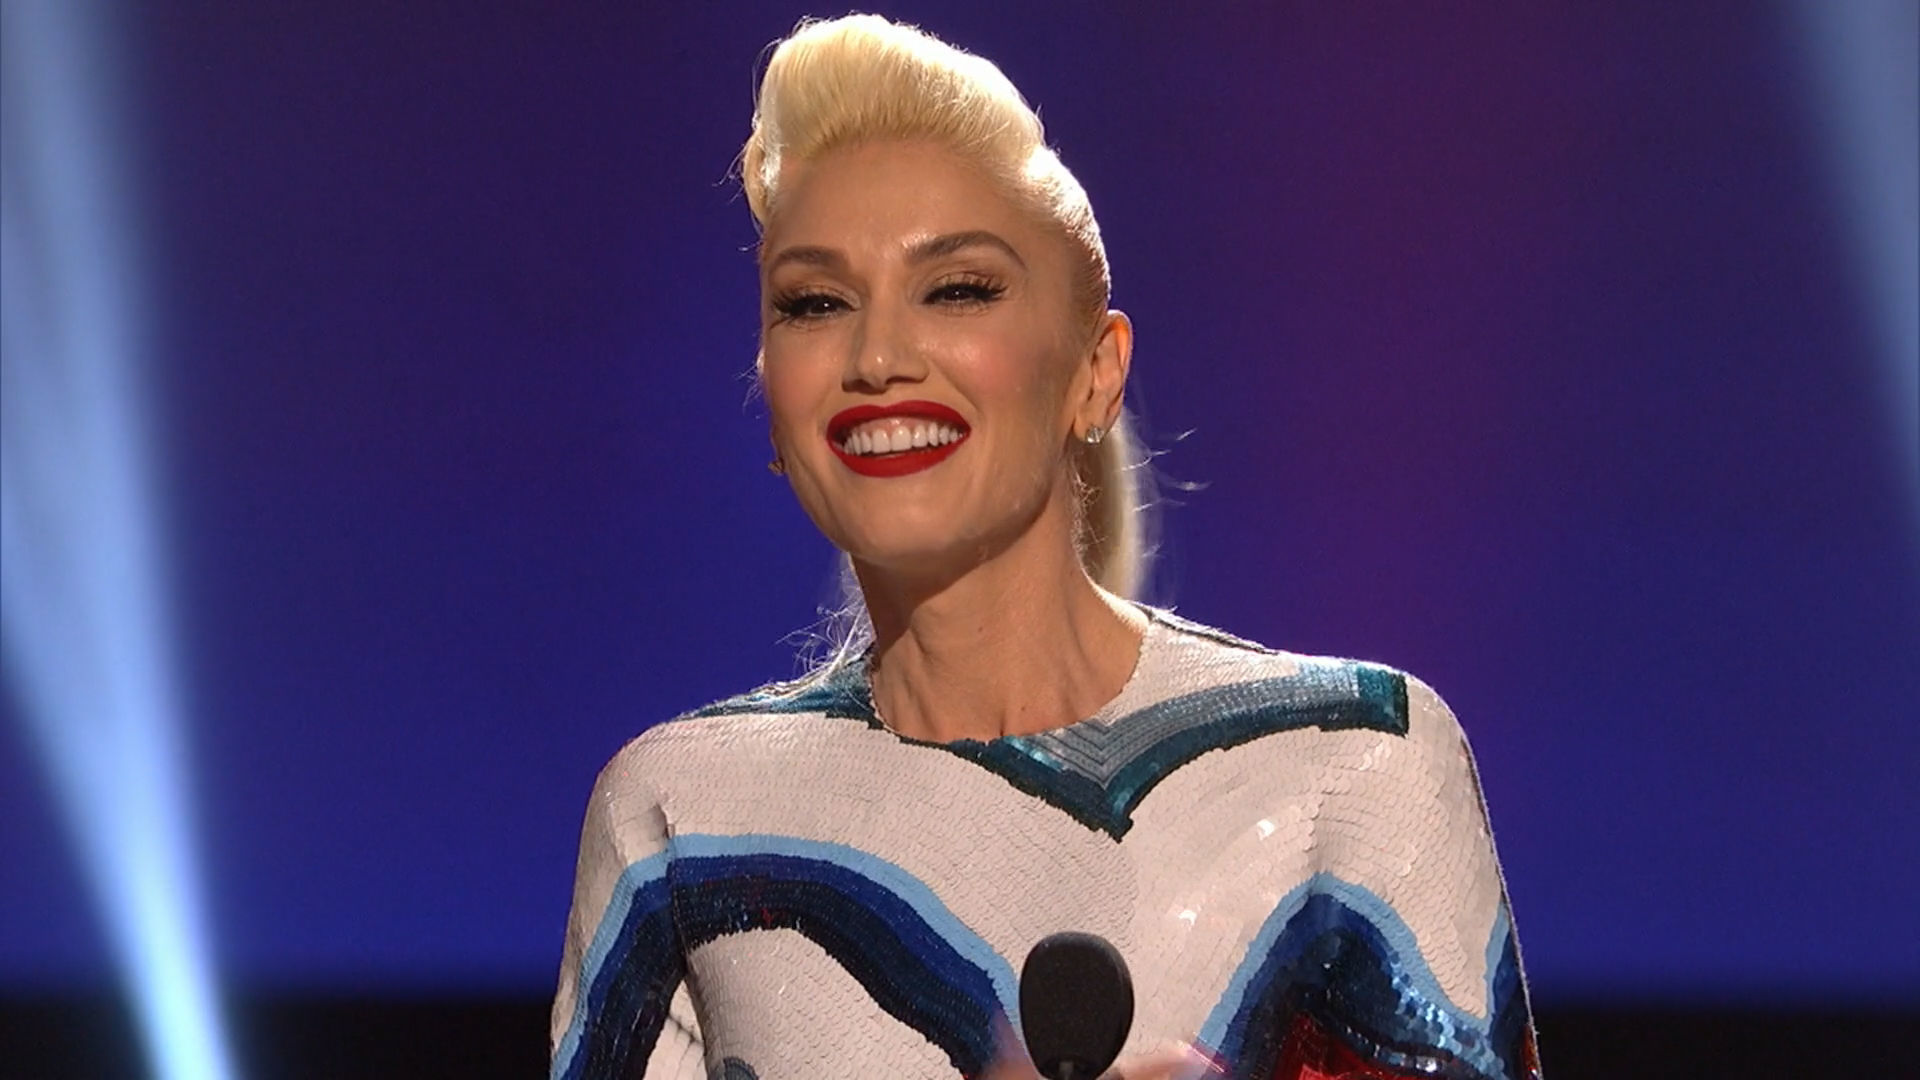 Gwen Stefani Hero Award at the 2016 RDMA | Radio Disney Music Awards | Radio Disney